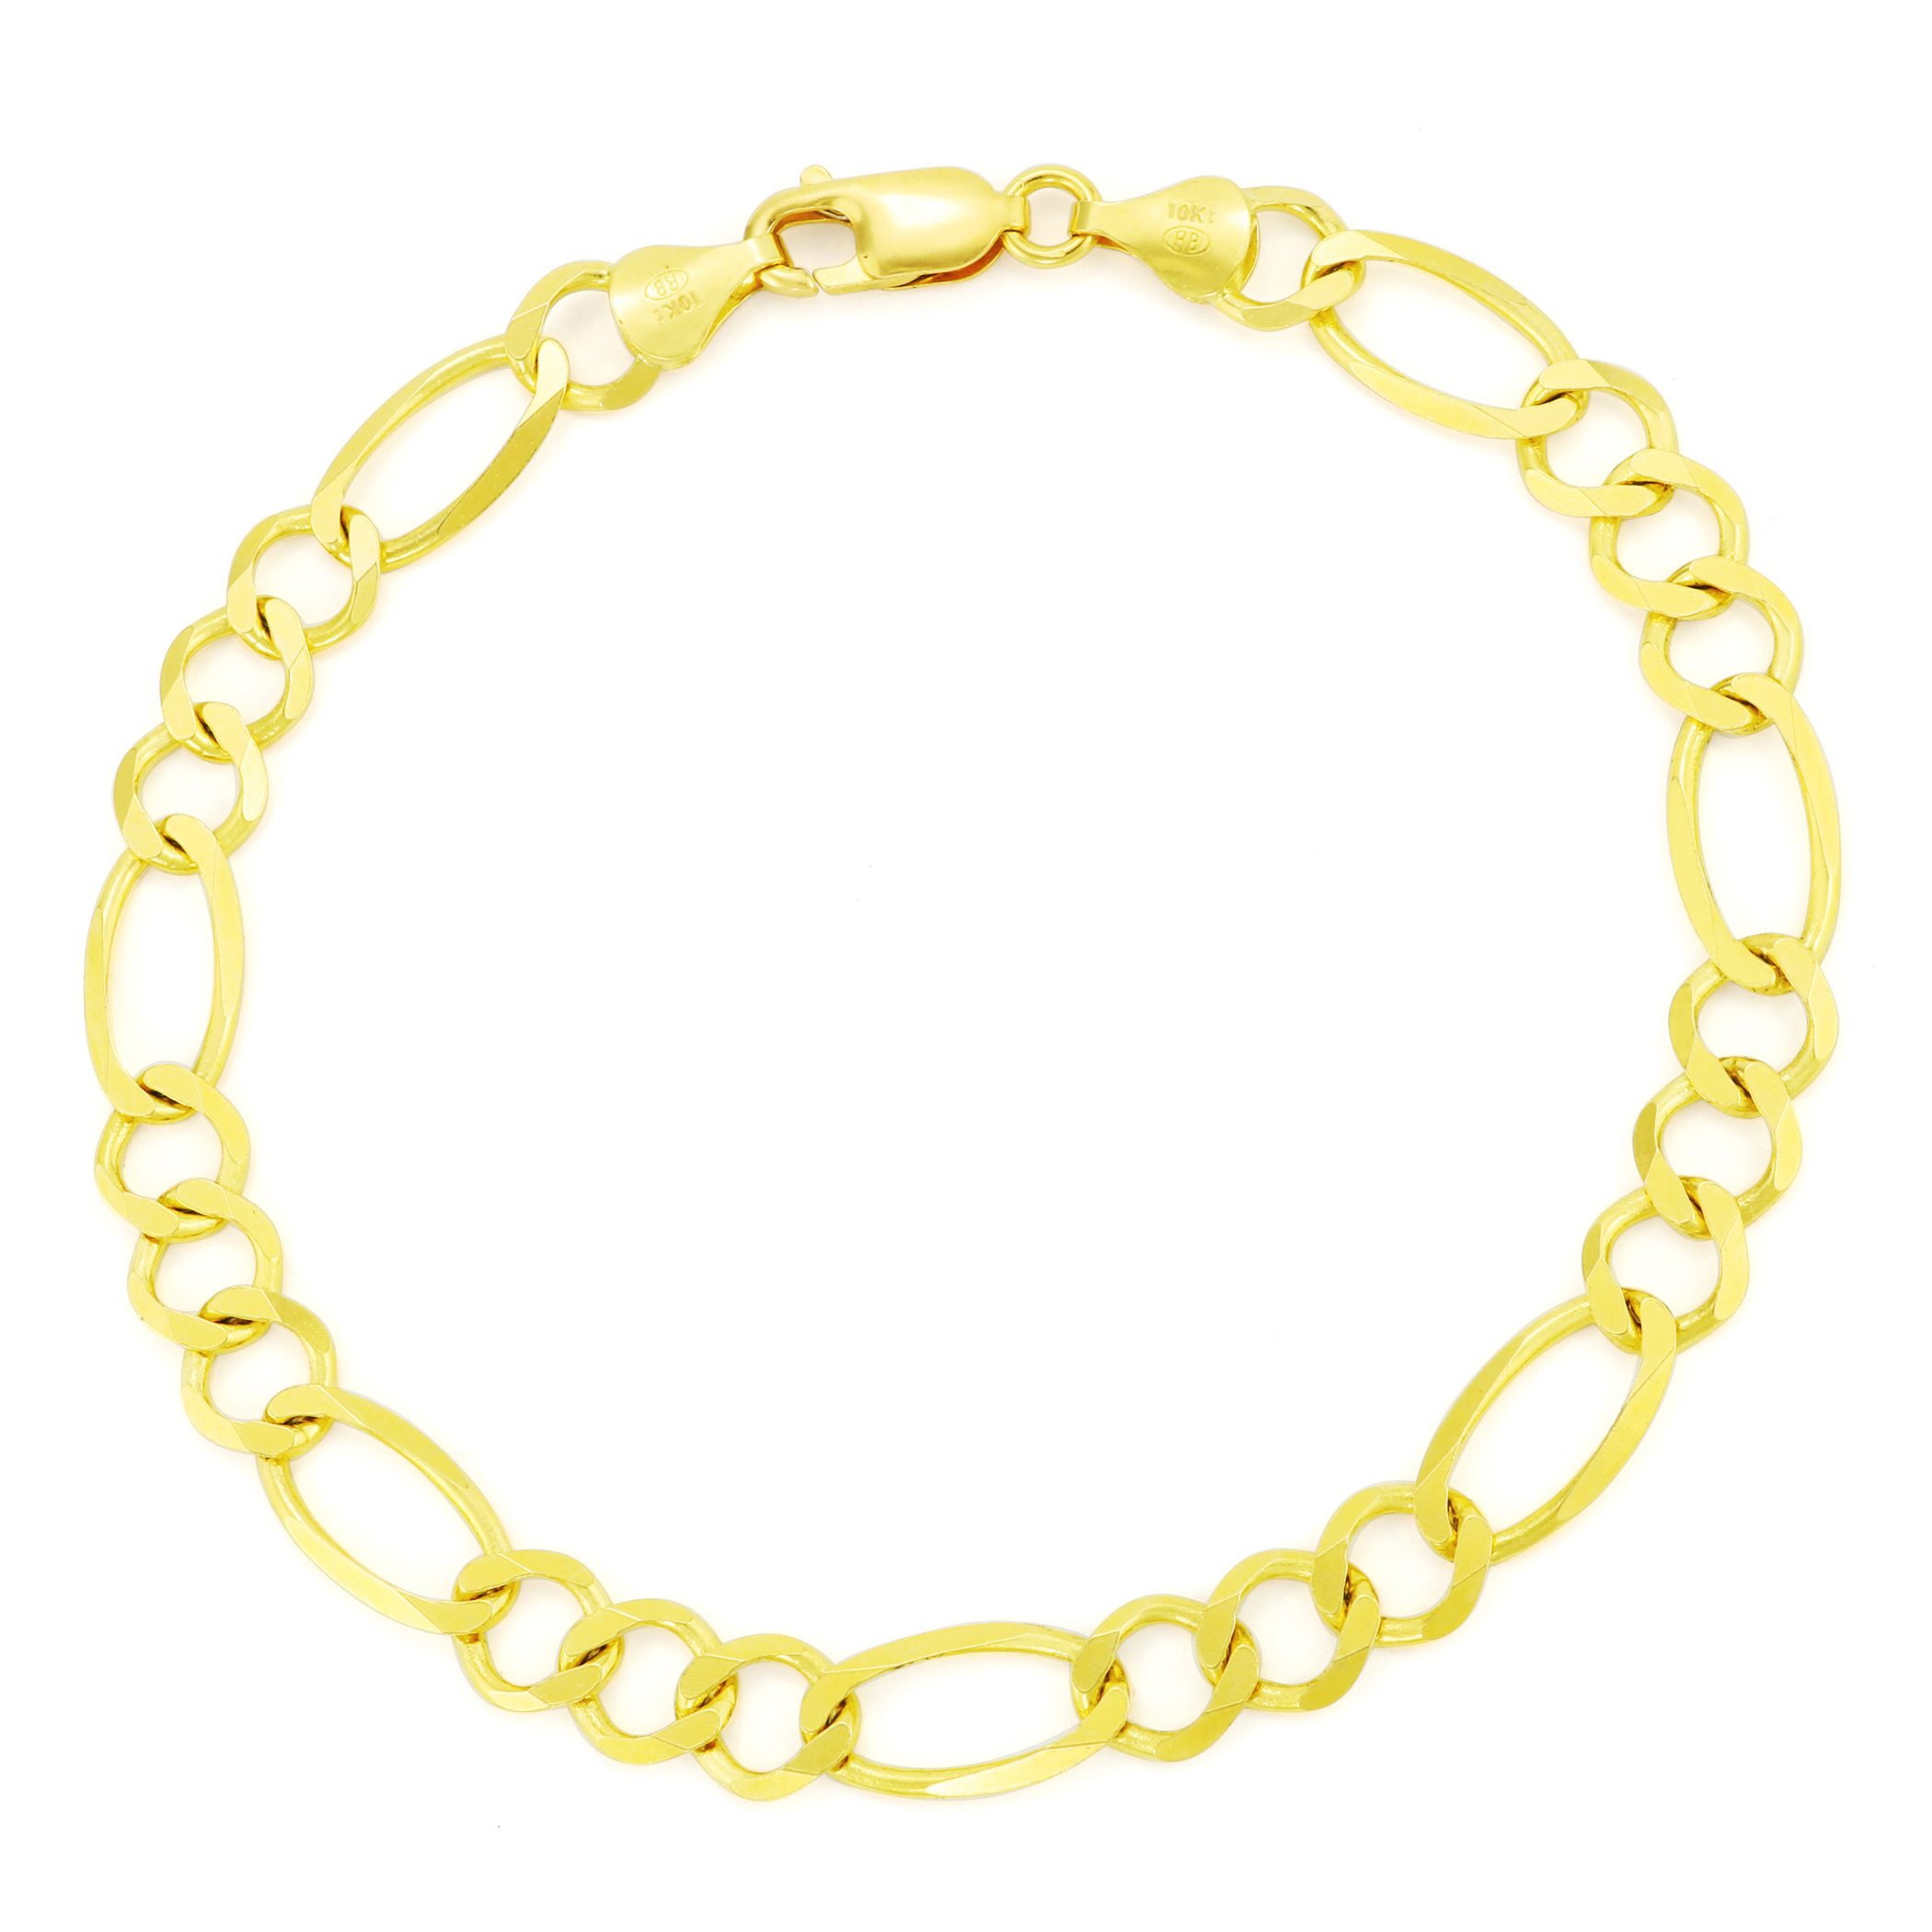 10K Yellow Gold 7.5mm Italian Link Figaro Chain Bracelet Lobster Clasp 8in 8/""